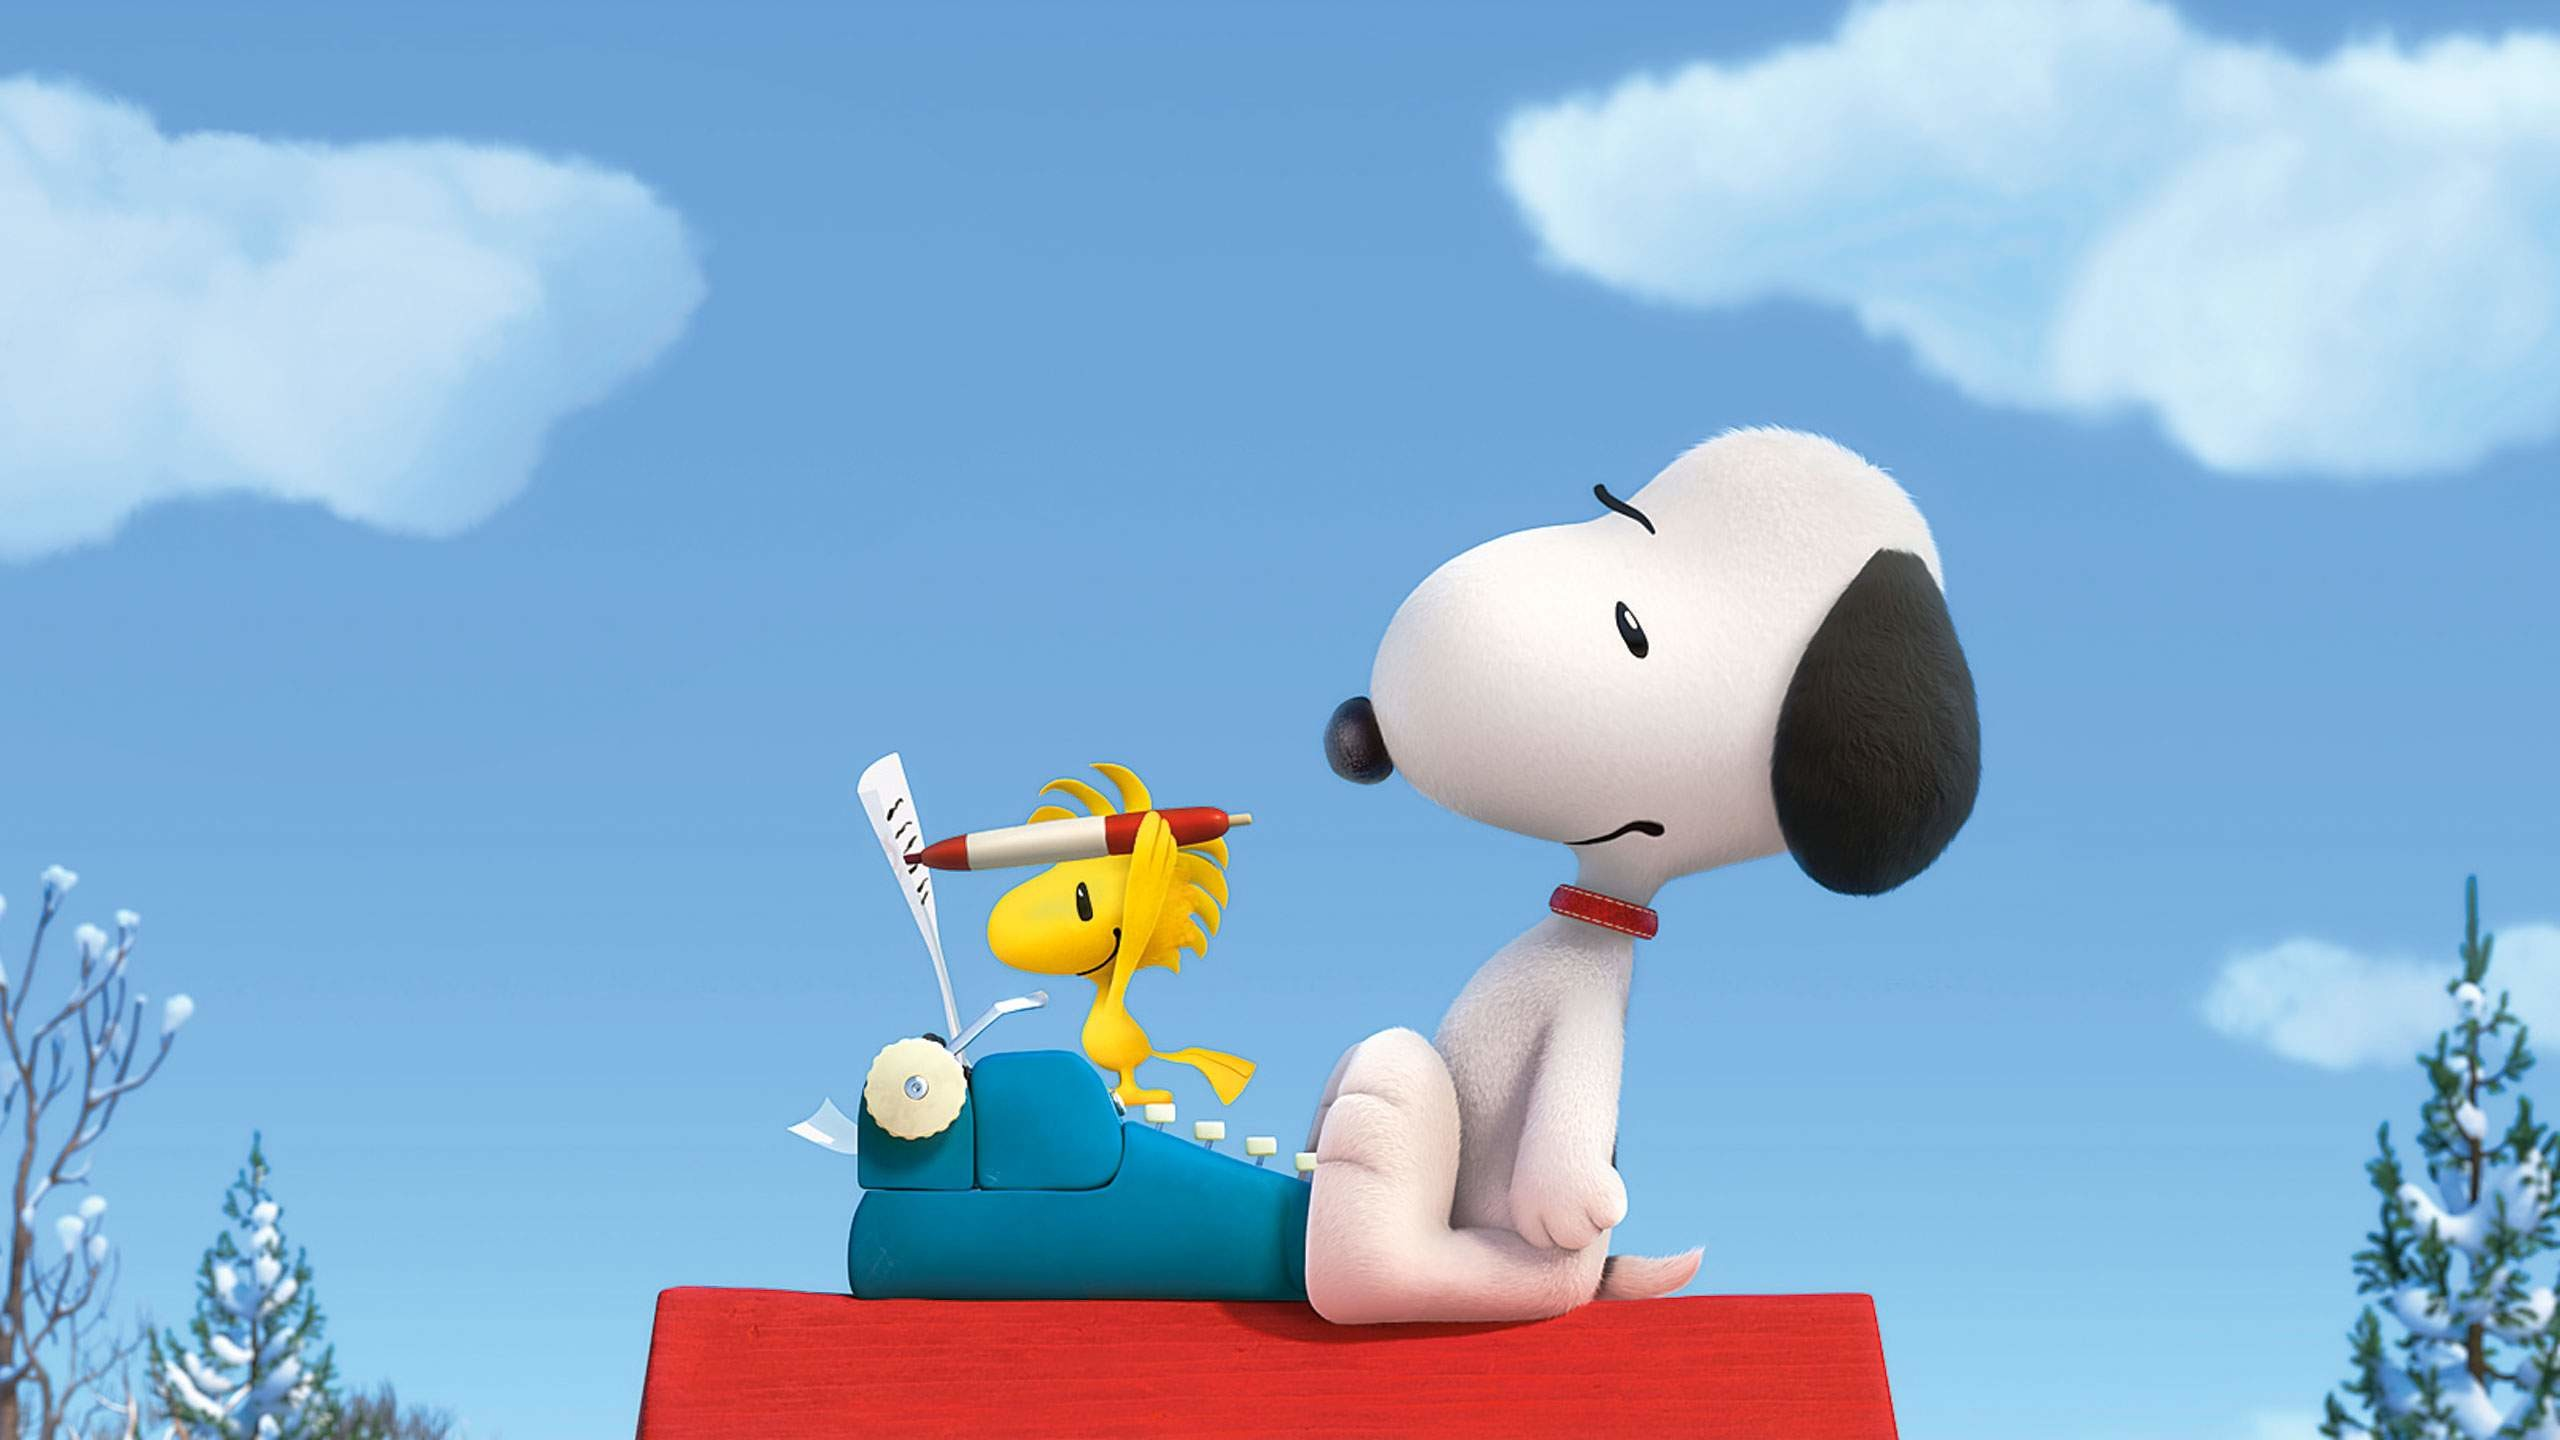 2560x1440 Snoopy Wallpaper for Lumia Cartoons Wallpapers